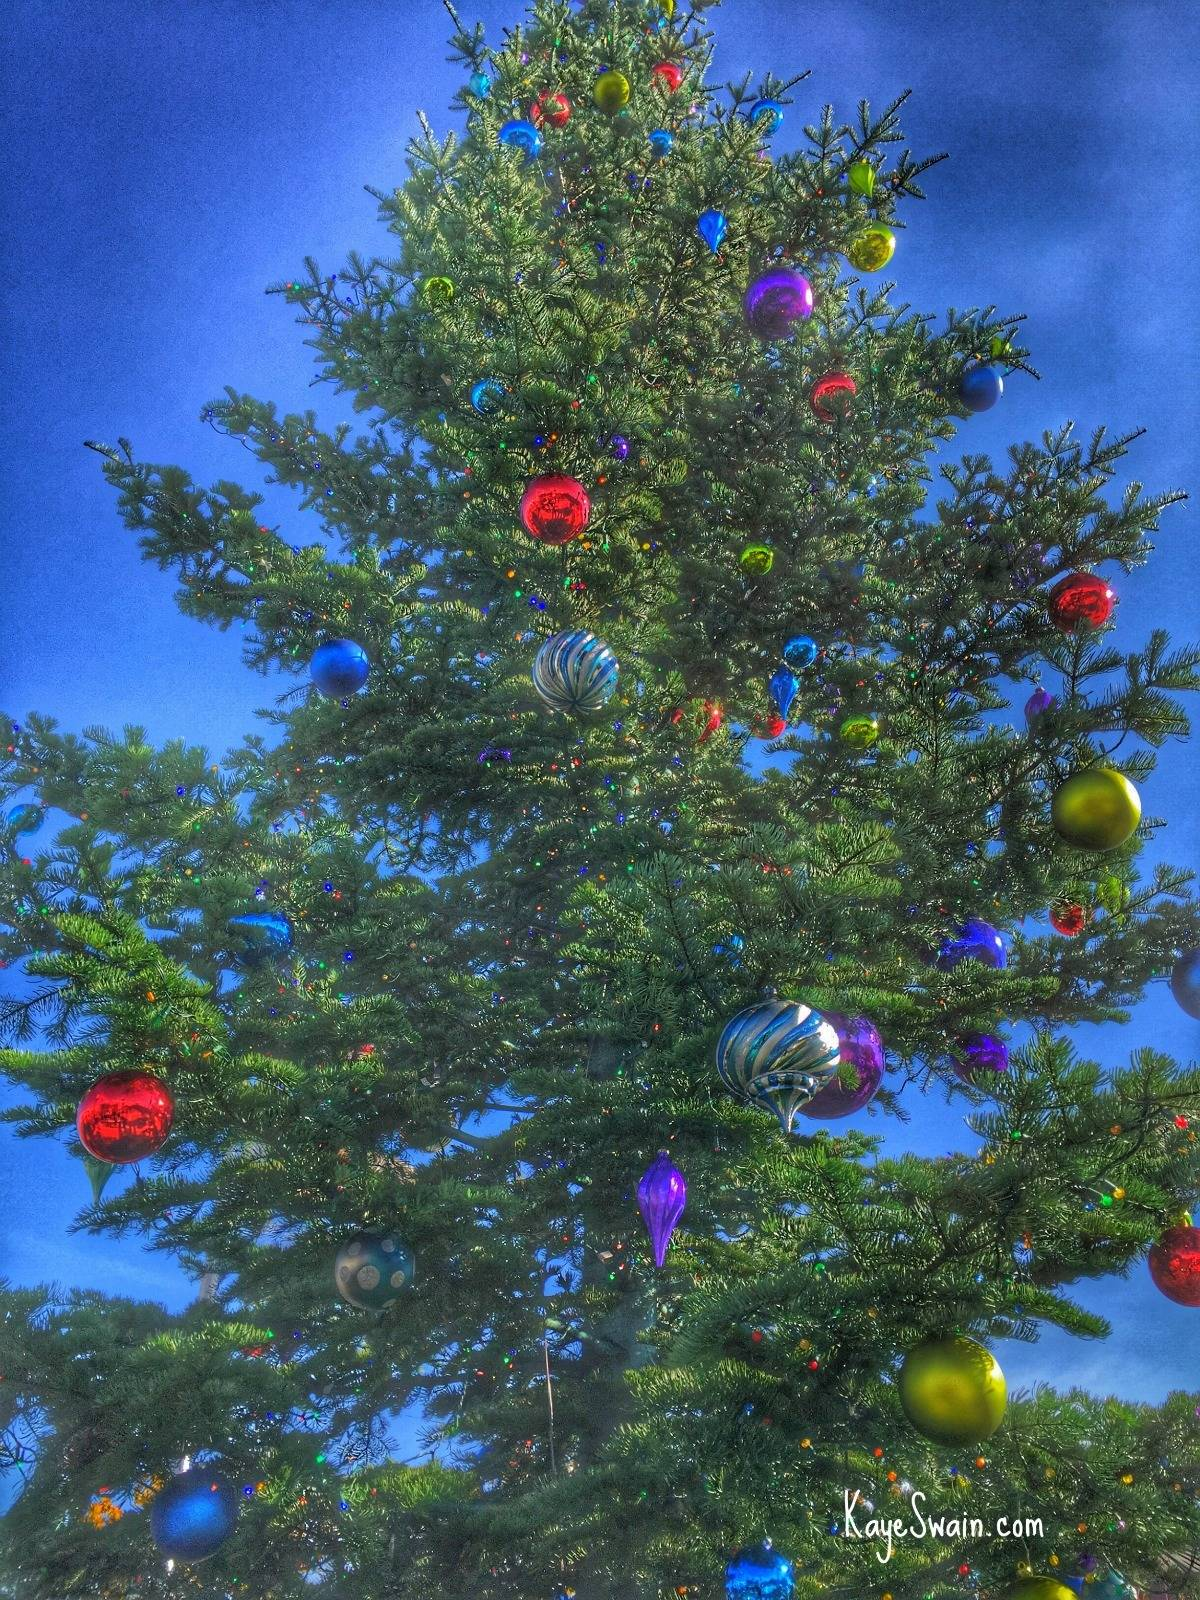 Kaye Swain Roseville CA real estate agent blogger sharing the gorgeous Christmas Tree in the Downtown Square